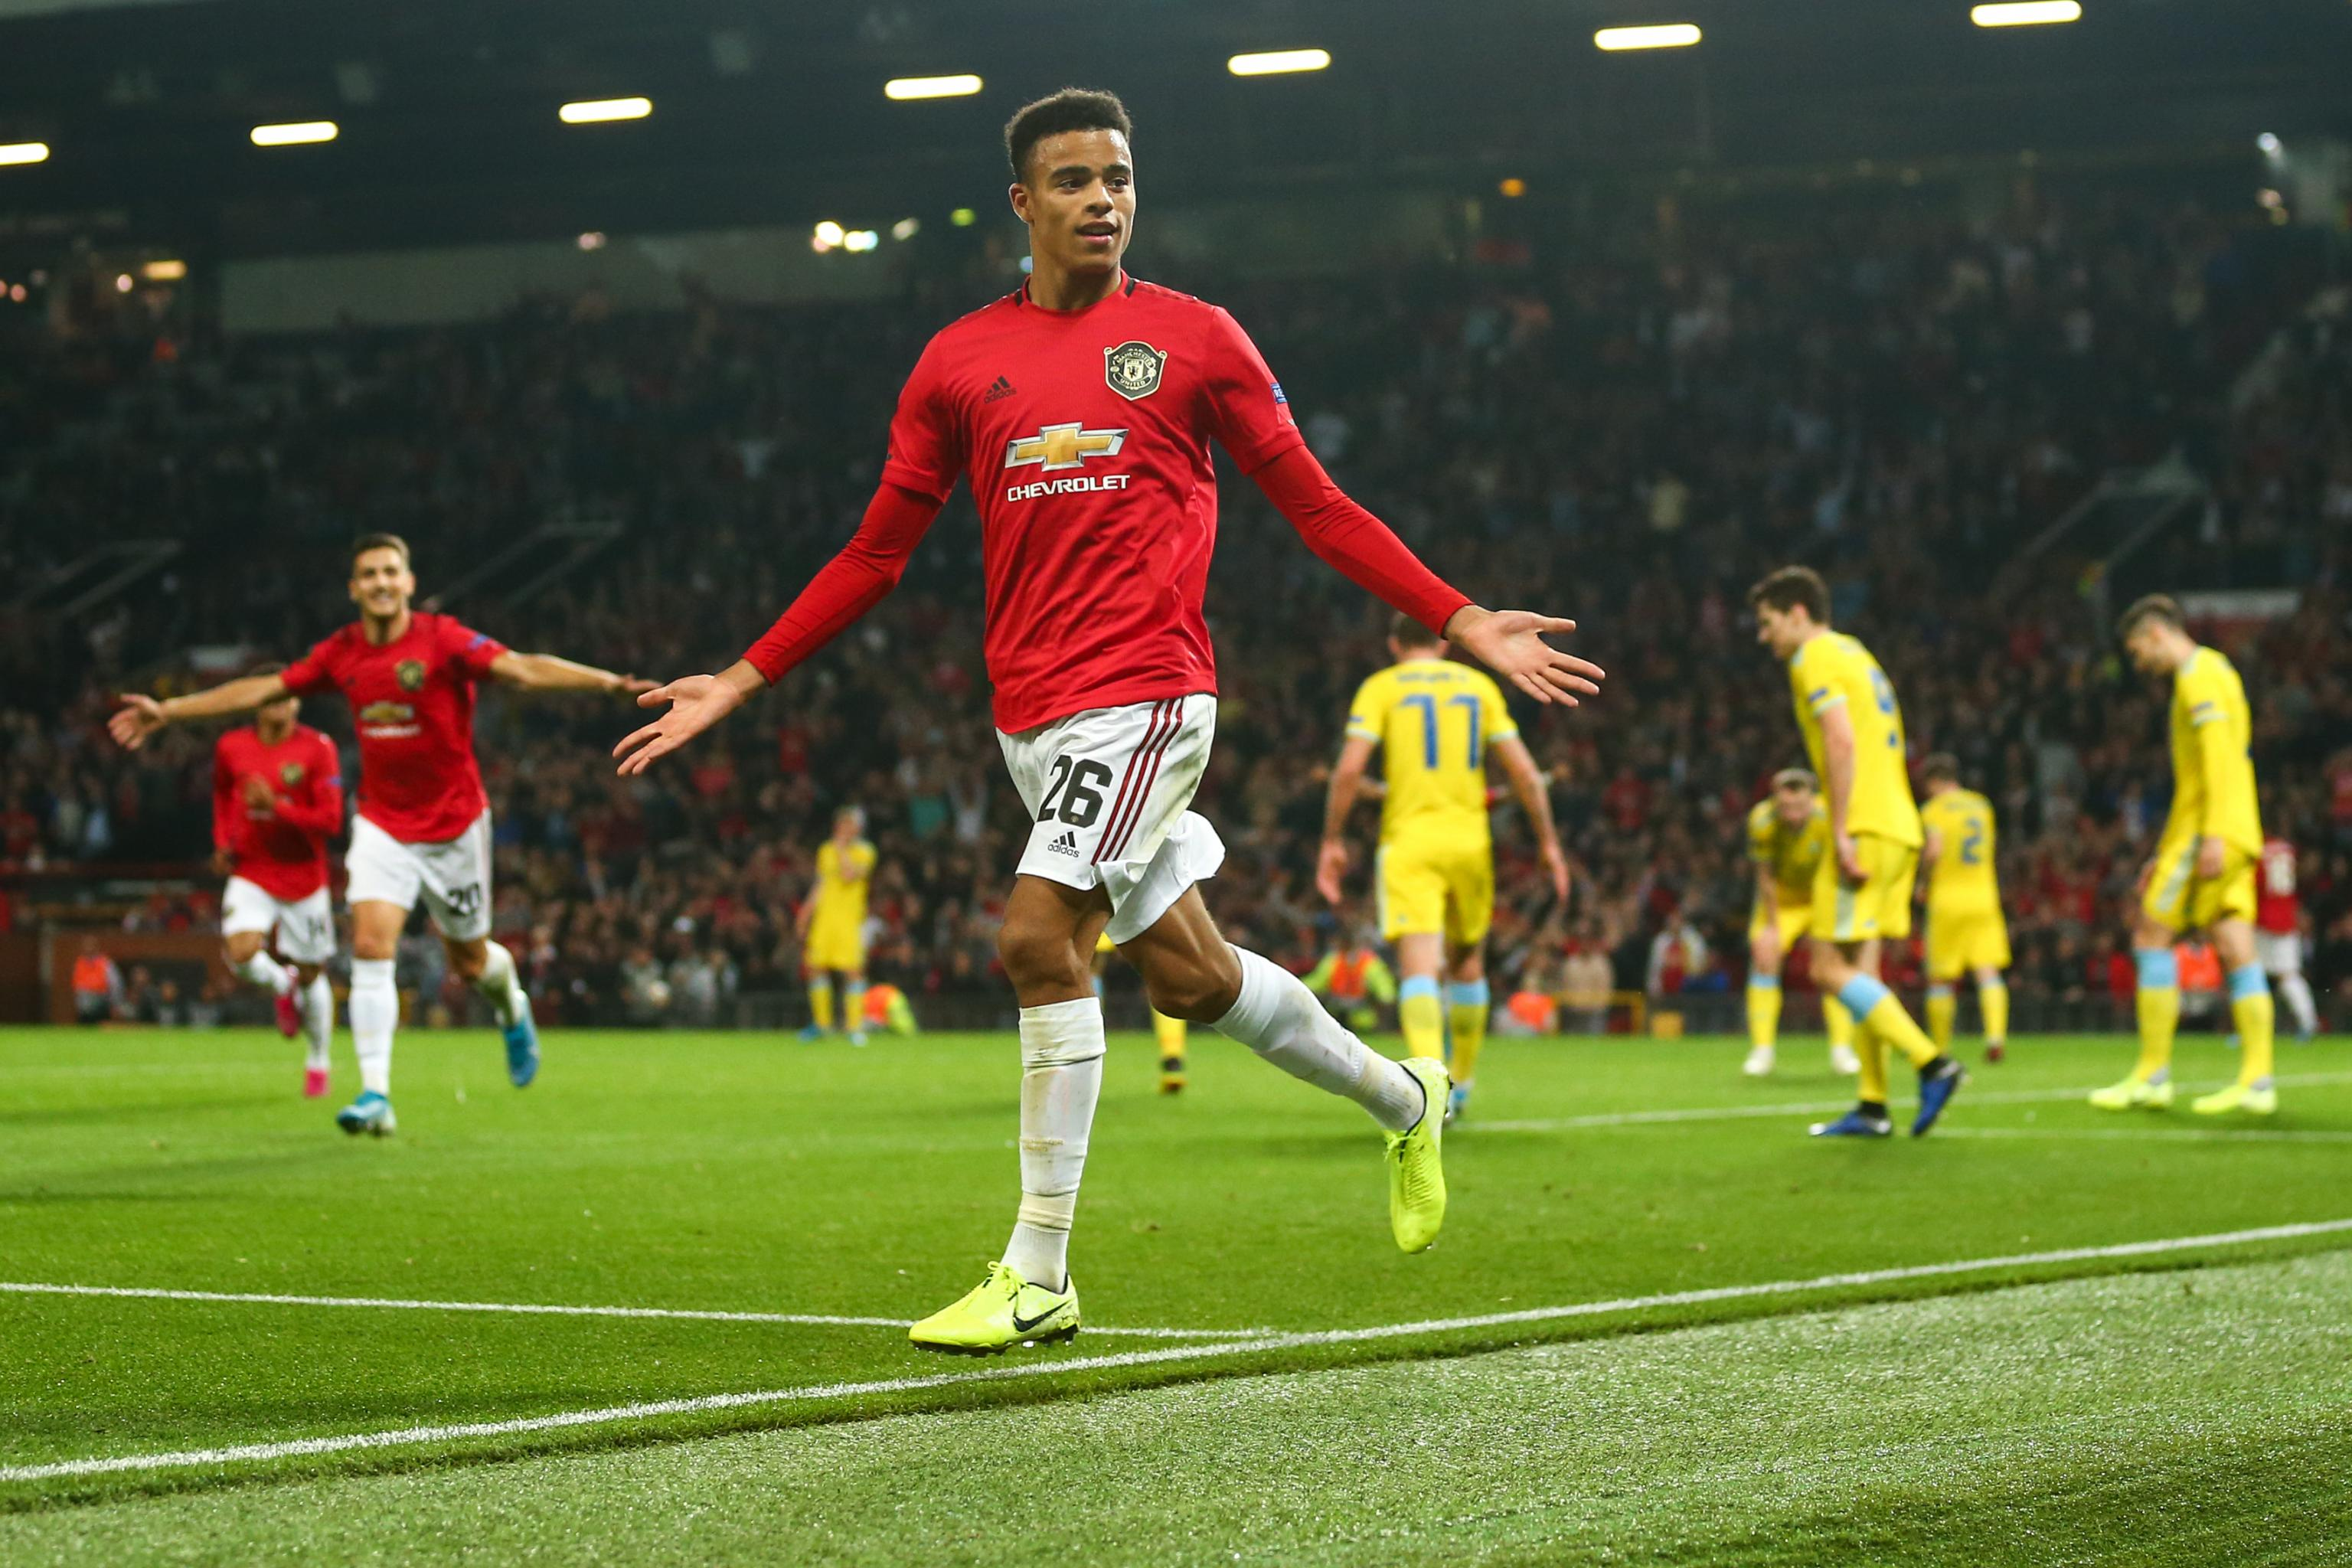 Report Mason Greenwood To Sign New 5 Year Contract With Manchester United Bleacher Report Latest News Videos And Highlights